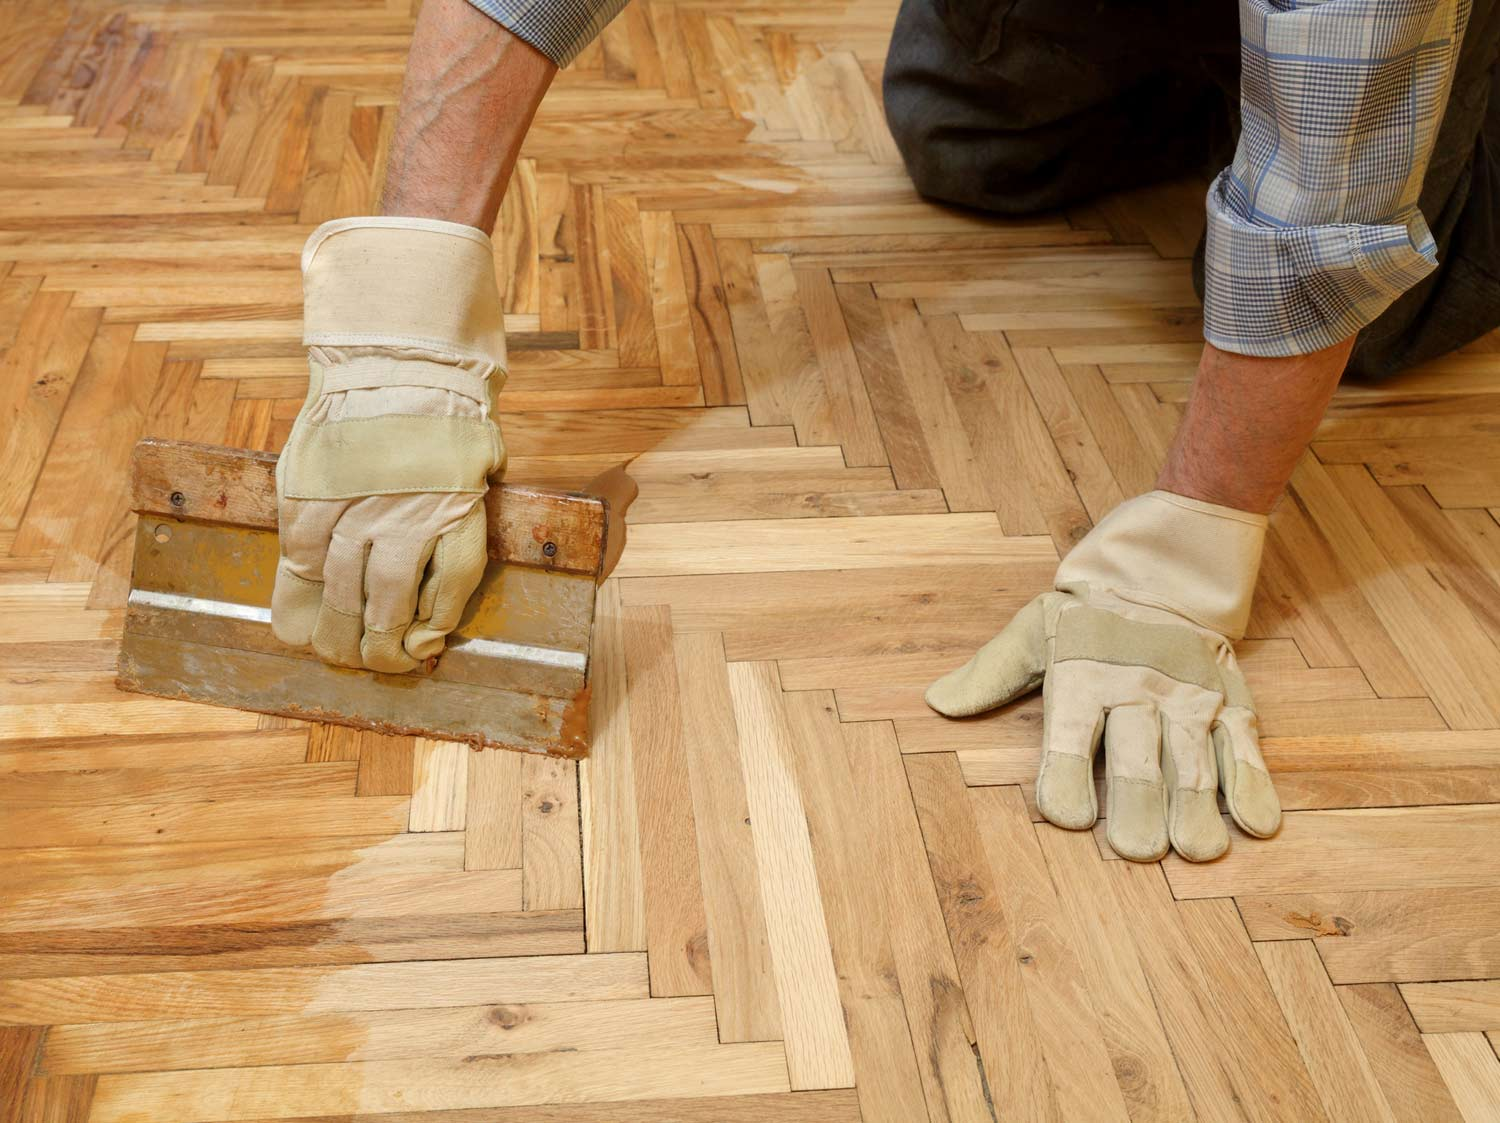 Parquet cire ou vitrifie photos de conception de maison for Poncer un parquet vitrifie